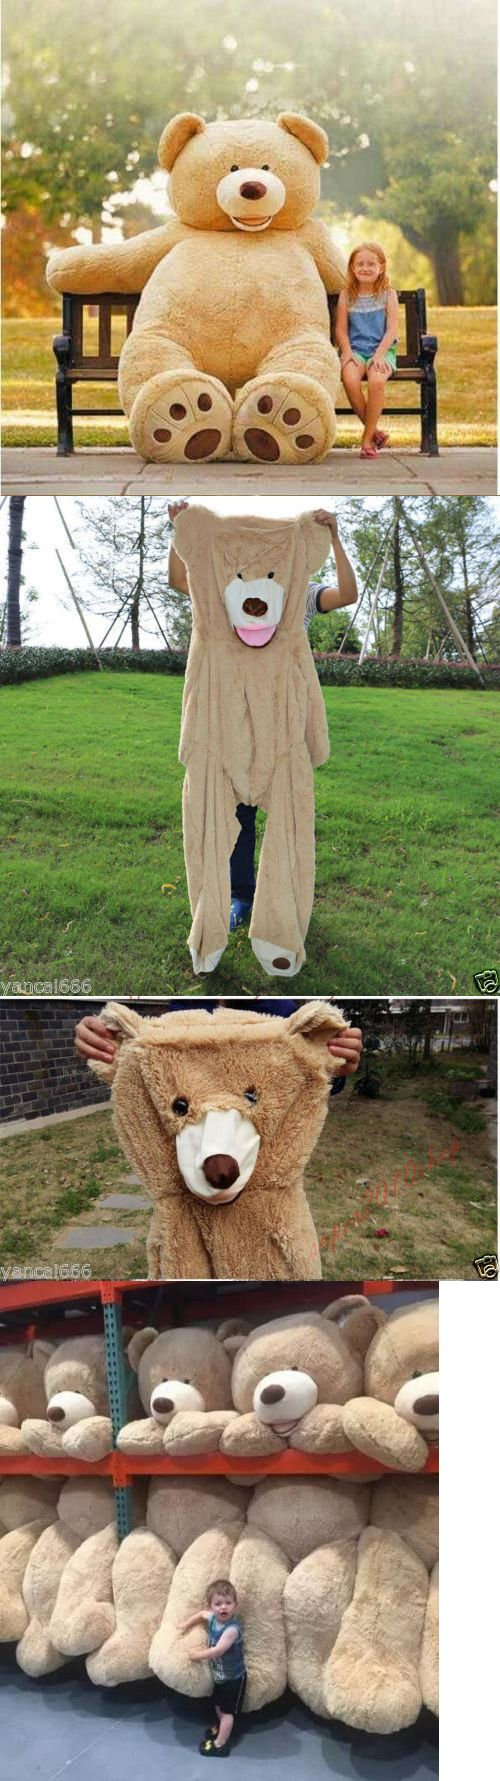 Toys for Baby 19068: 80Cm-340Cm Giant Teddy Bear Toy American Bear Cover With Zipper Plush Soft Gift -> BUY IT NOW ONLY: $111.99 on eBay!